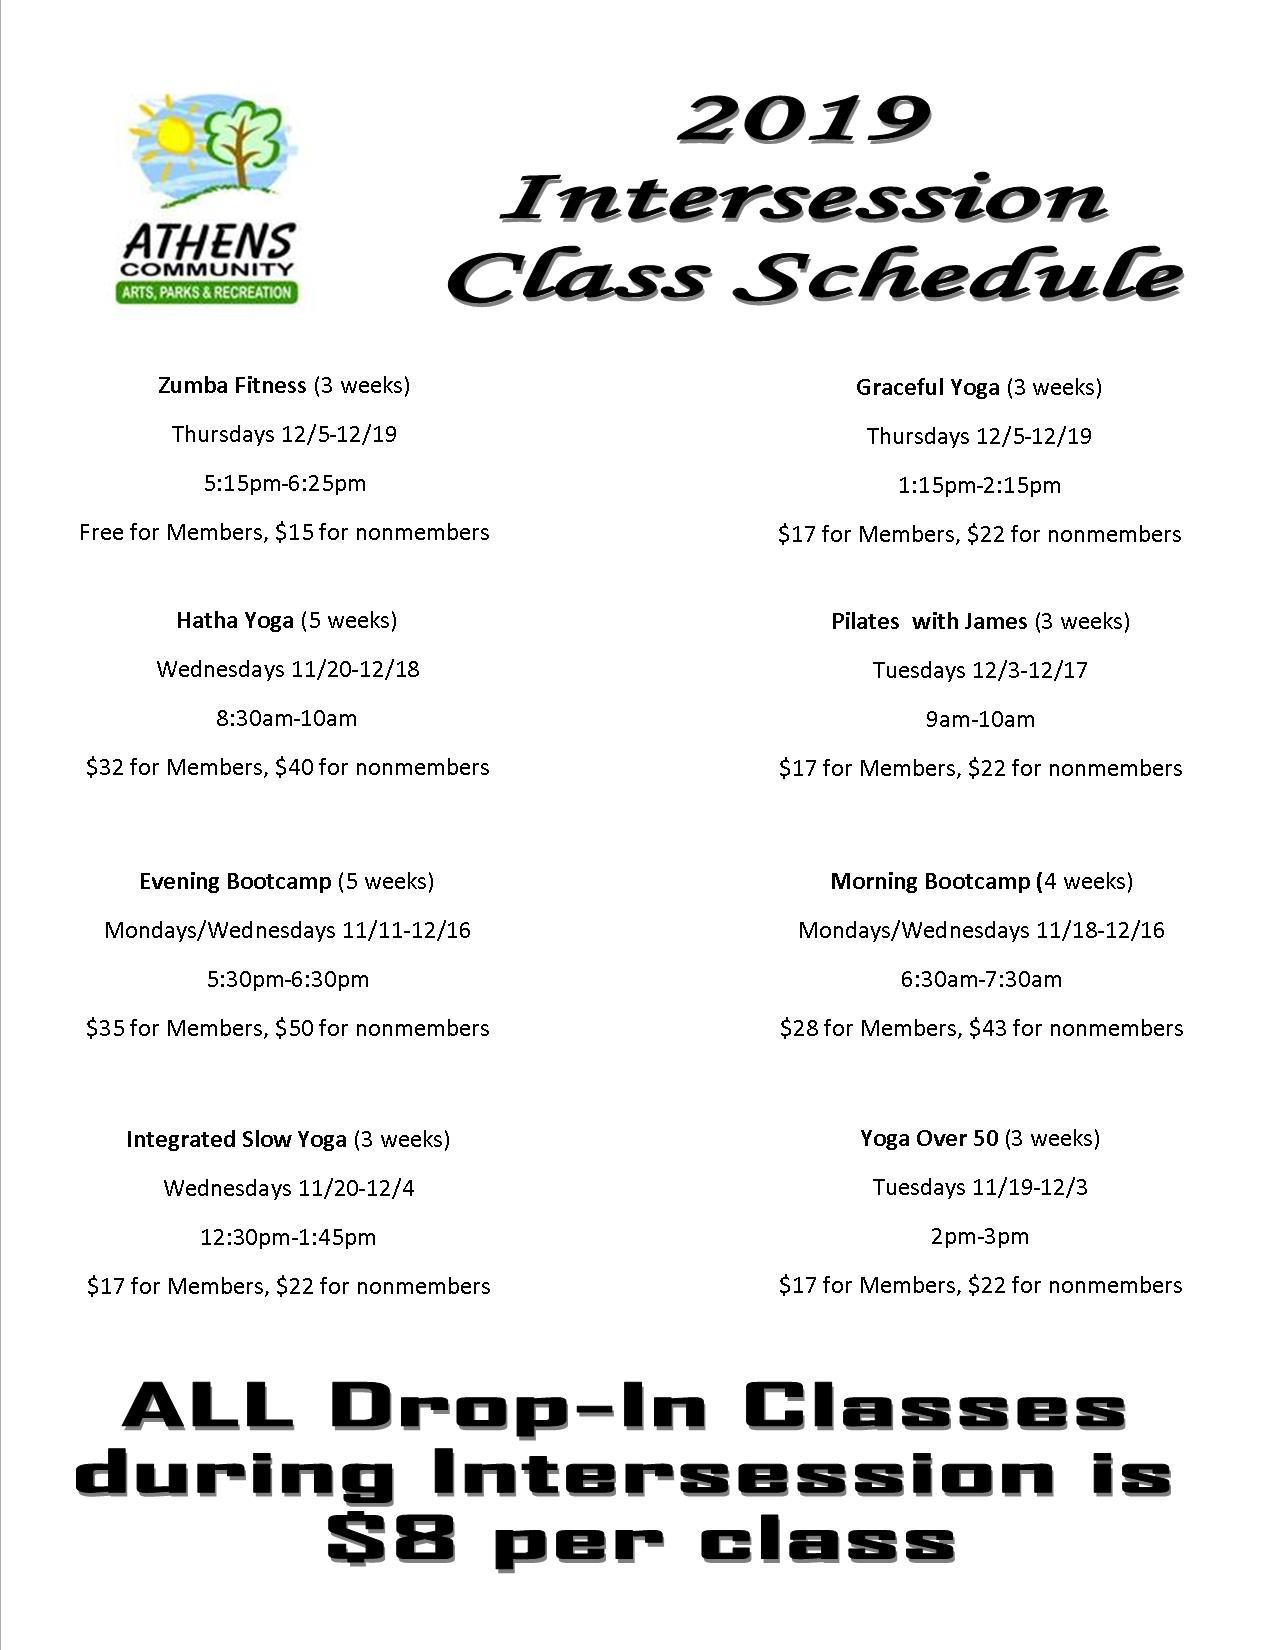 Intercession Fitness Classes Updated